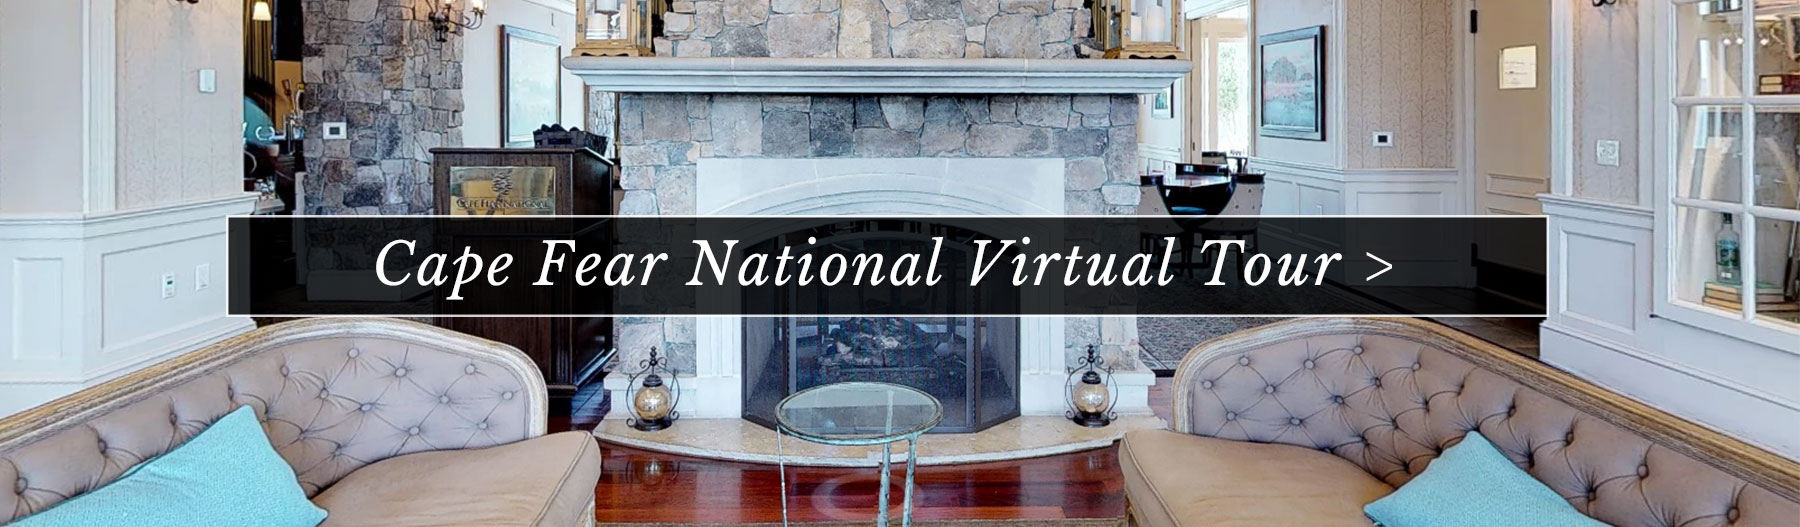 Cape Fear National Virtual Tour